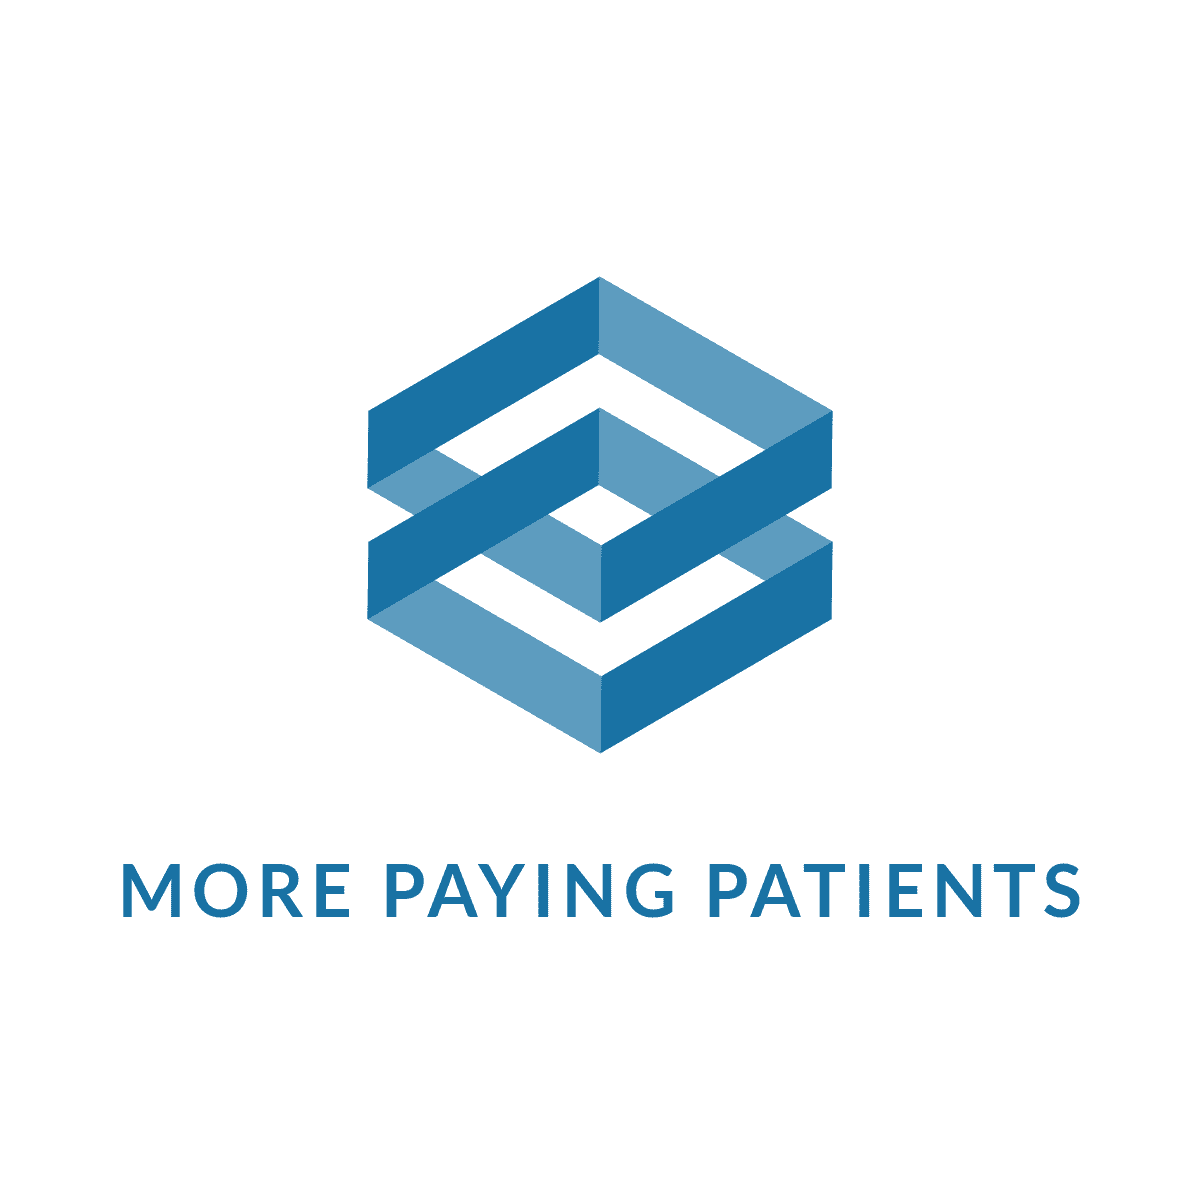 More Paying Patients